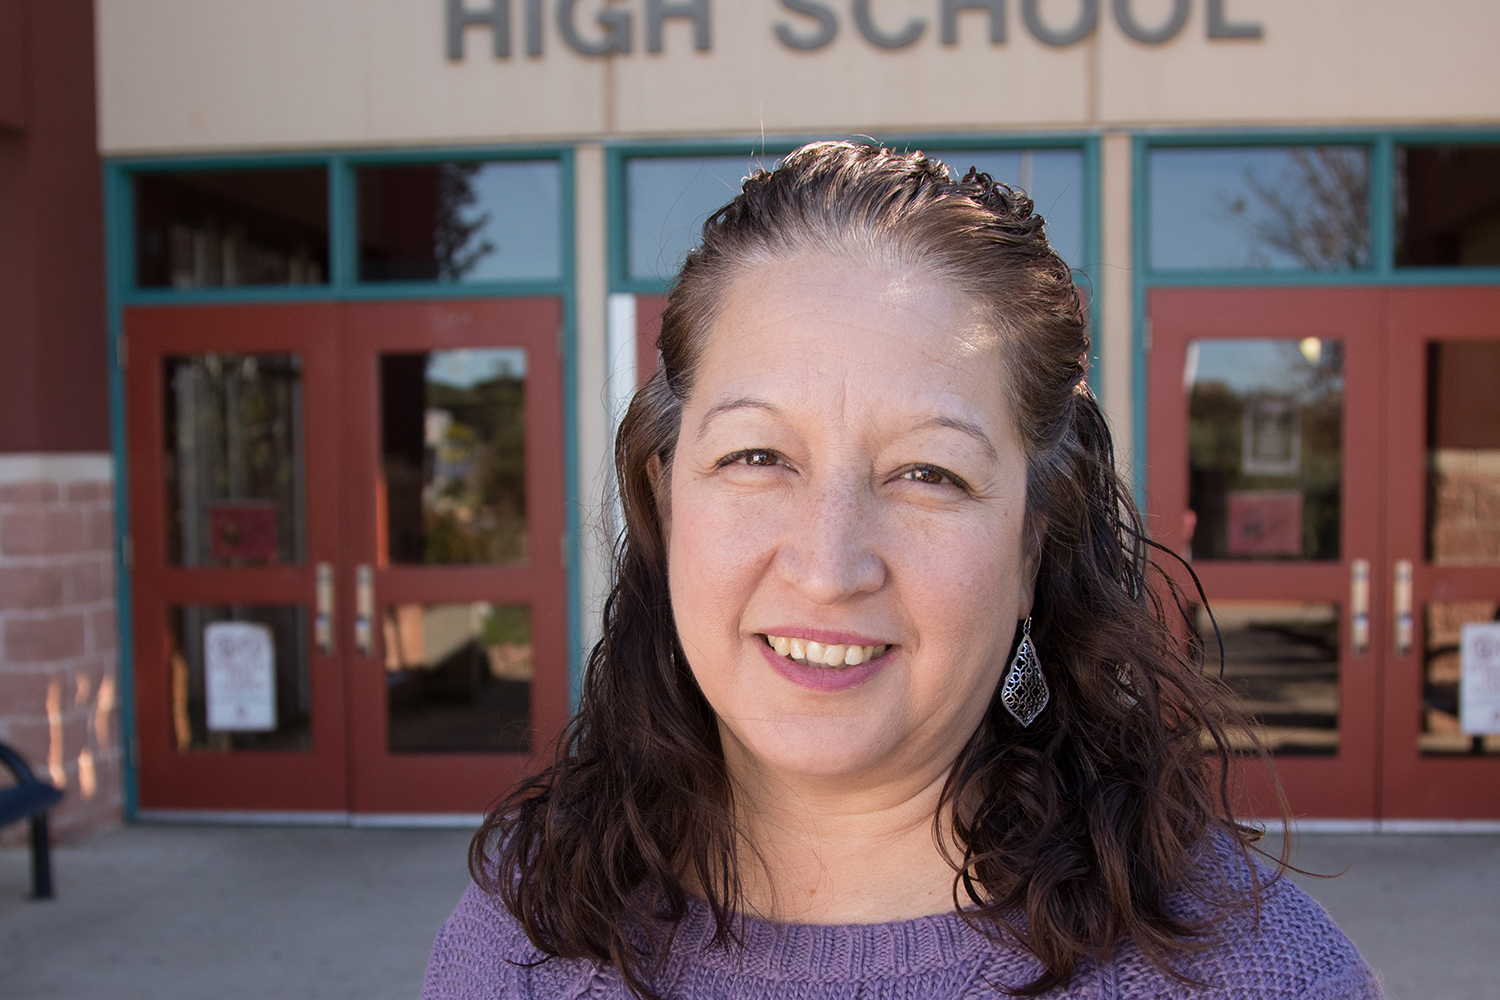 On Oct. 29, the Austin ISD school board voted to appoint Tina Salazar to serve as the Principal of Akins High School. Salazar previously served as the interim principal, and assistant principal, a teacher and a coach at Akins.